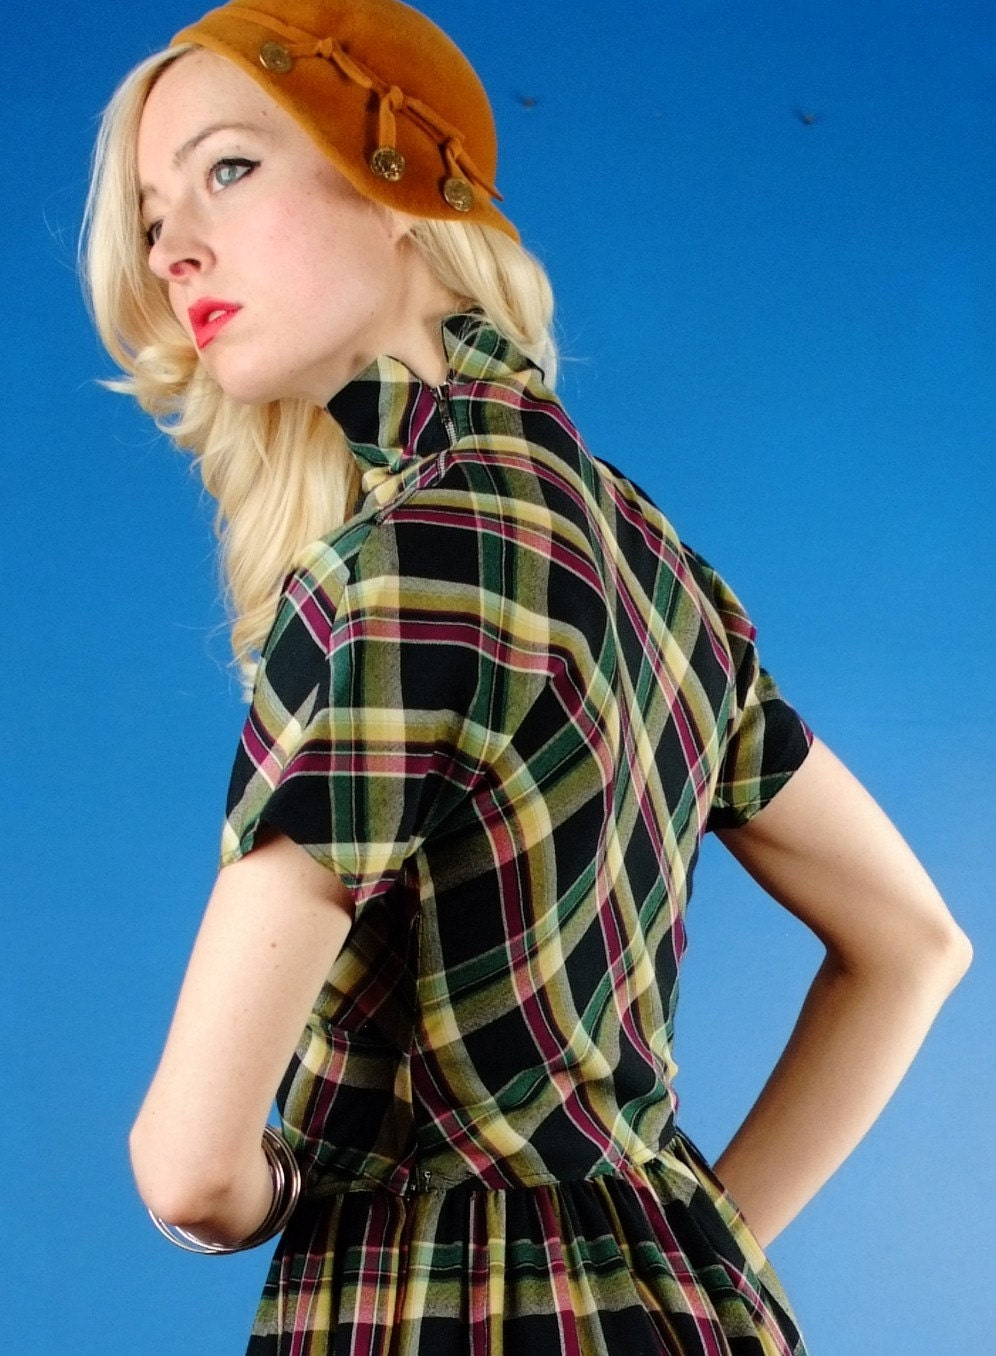 Claire Mccardell Vintage 40s Schoolgirl Green Plaid Wool Swing